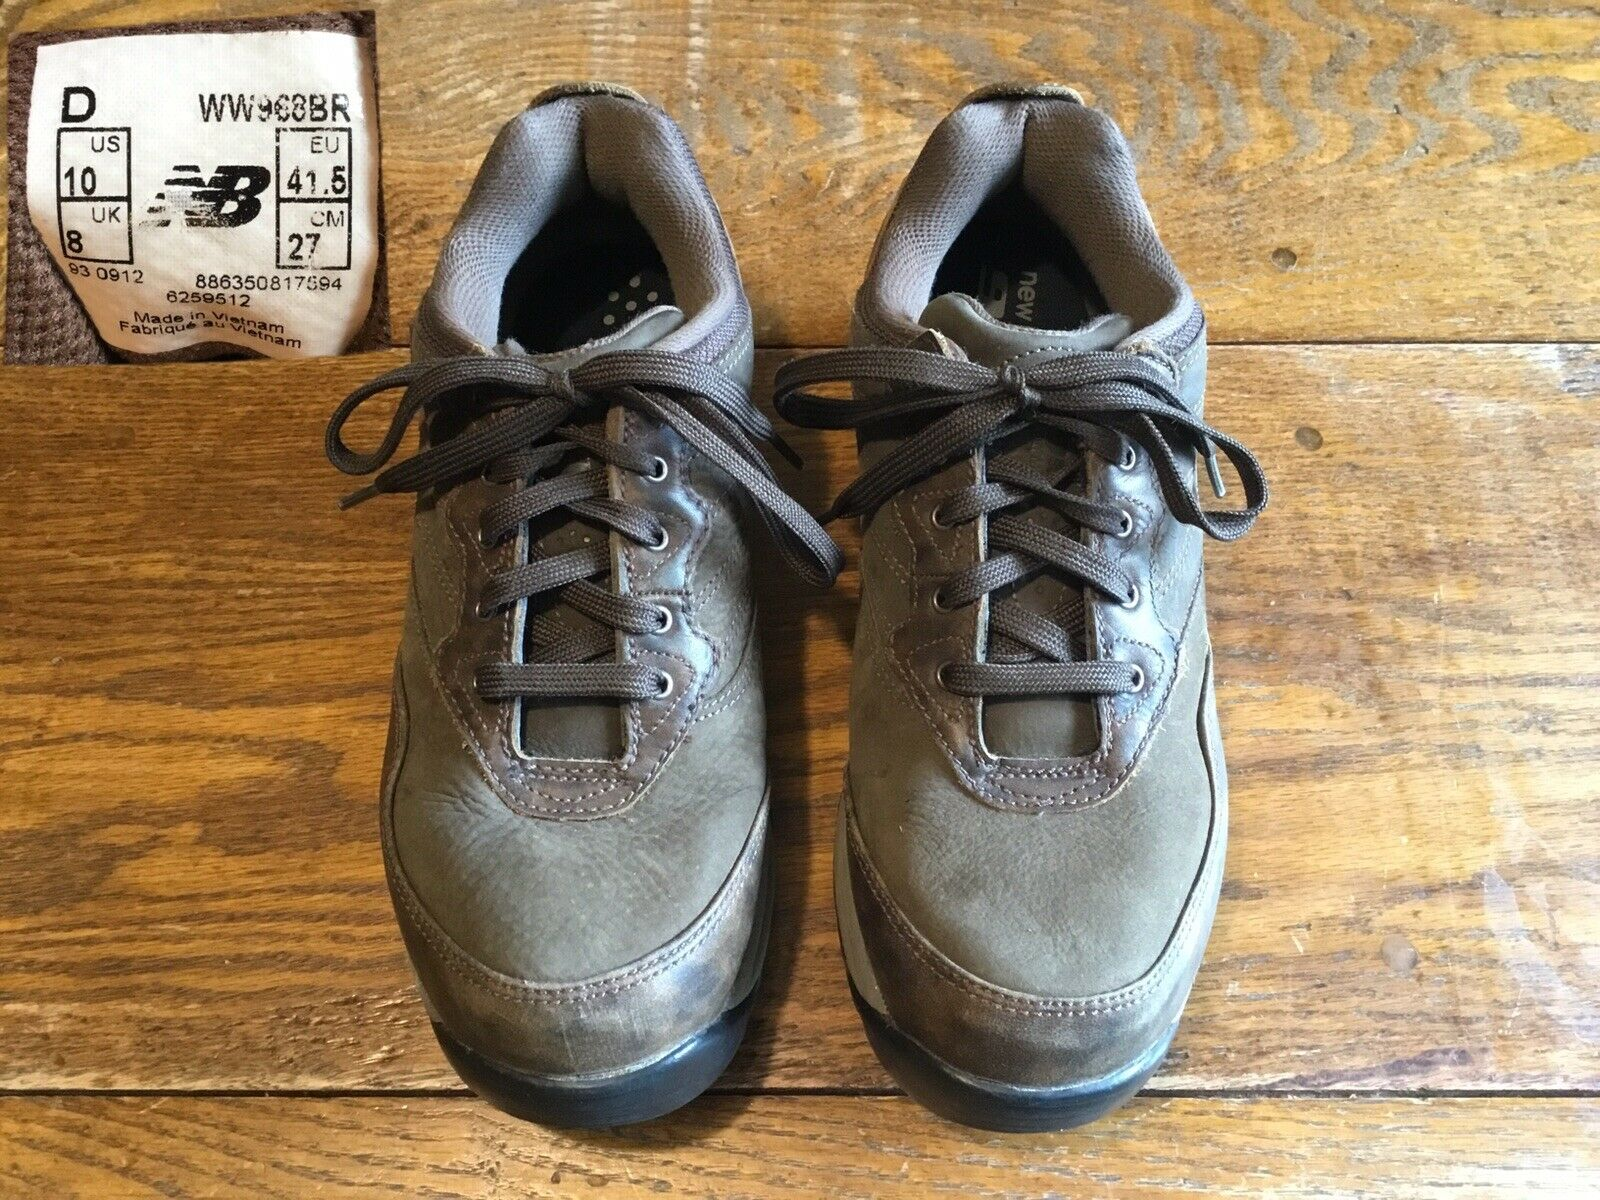 Mens NEW BALANCE MW968BR Brown Leather Outdoor Waterproof Walking shoes, Sz 10D